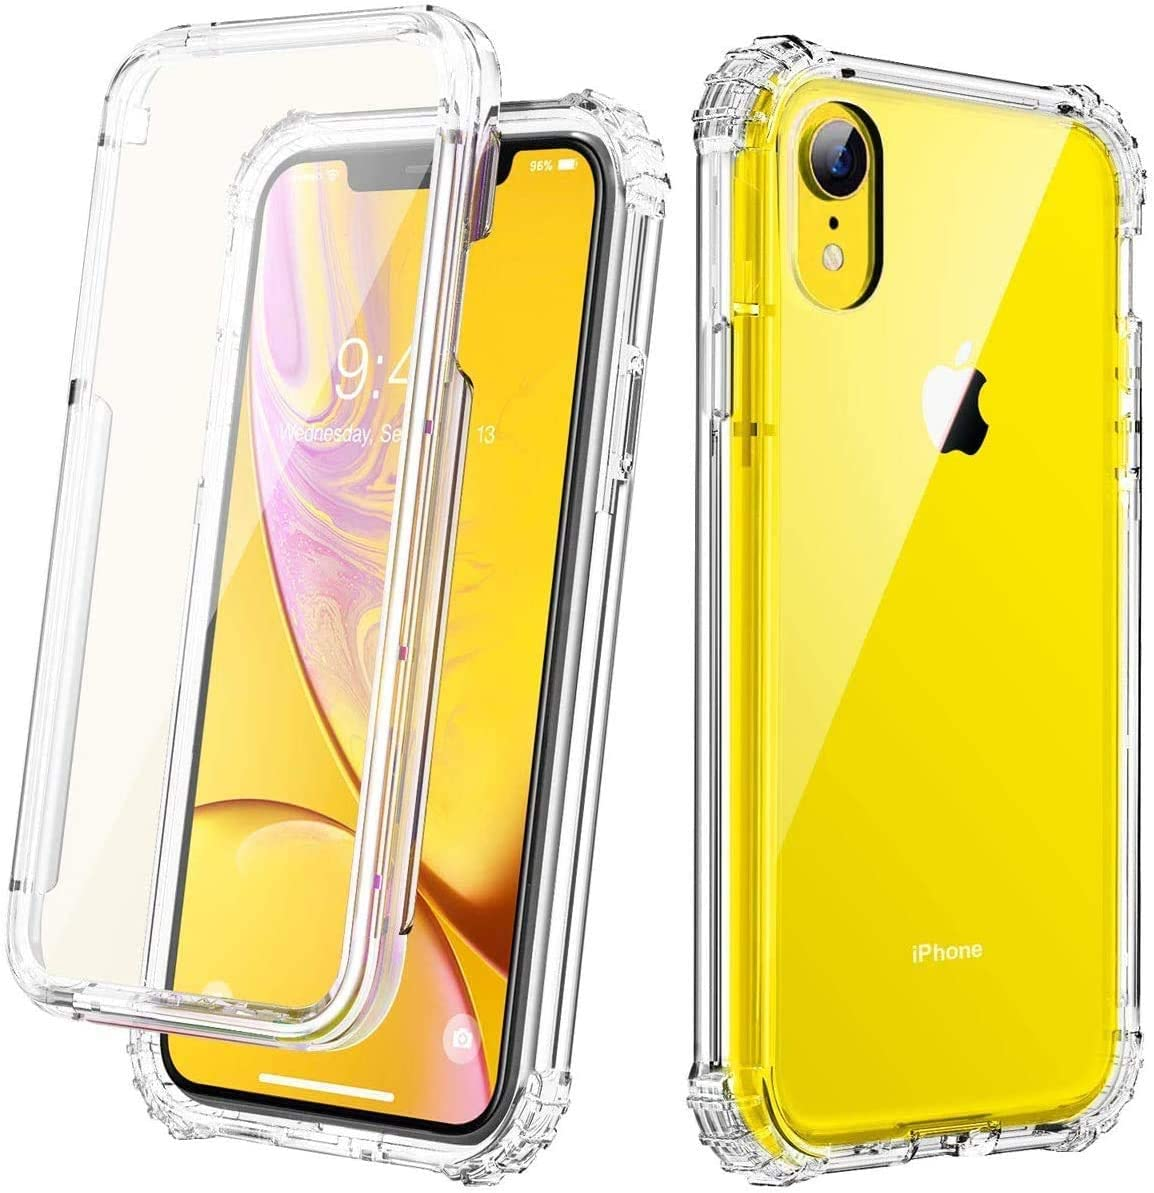 Vooii iPhone XR Case, [Built in Screen Protector] Slim Anti-Scratch Full-Body Shockproof Dual Layer Protective Transparency Soft TPU Cover Case for iPhone XR,Clear